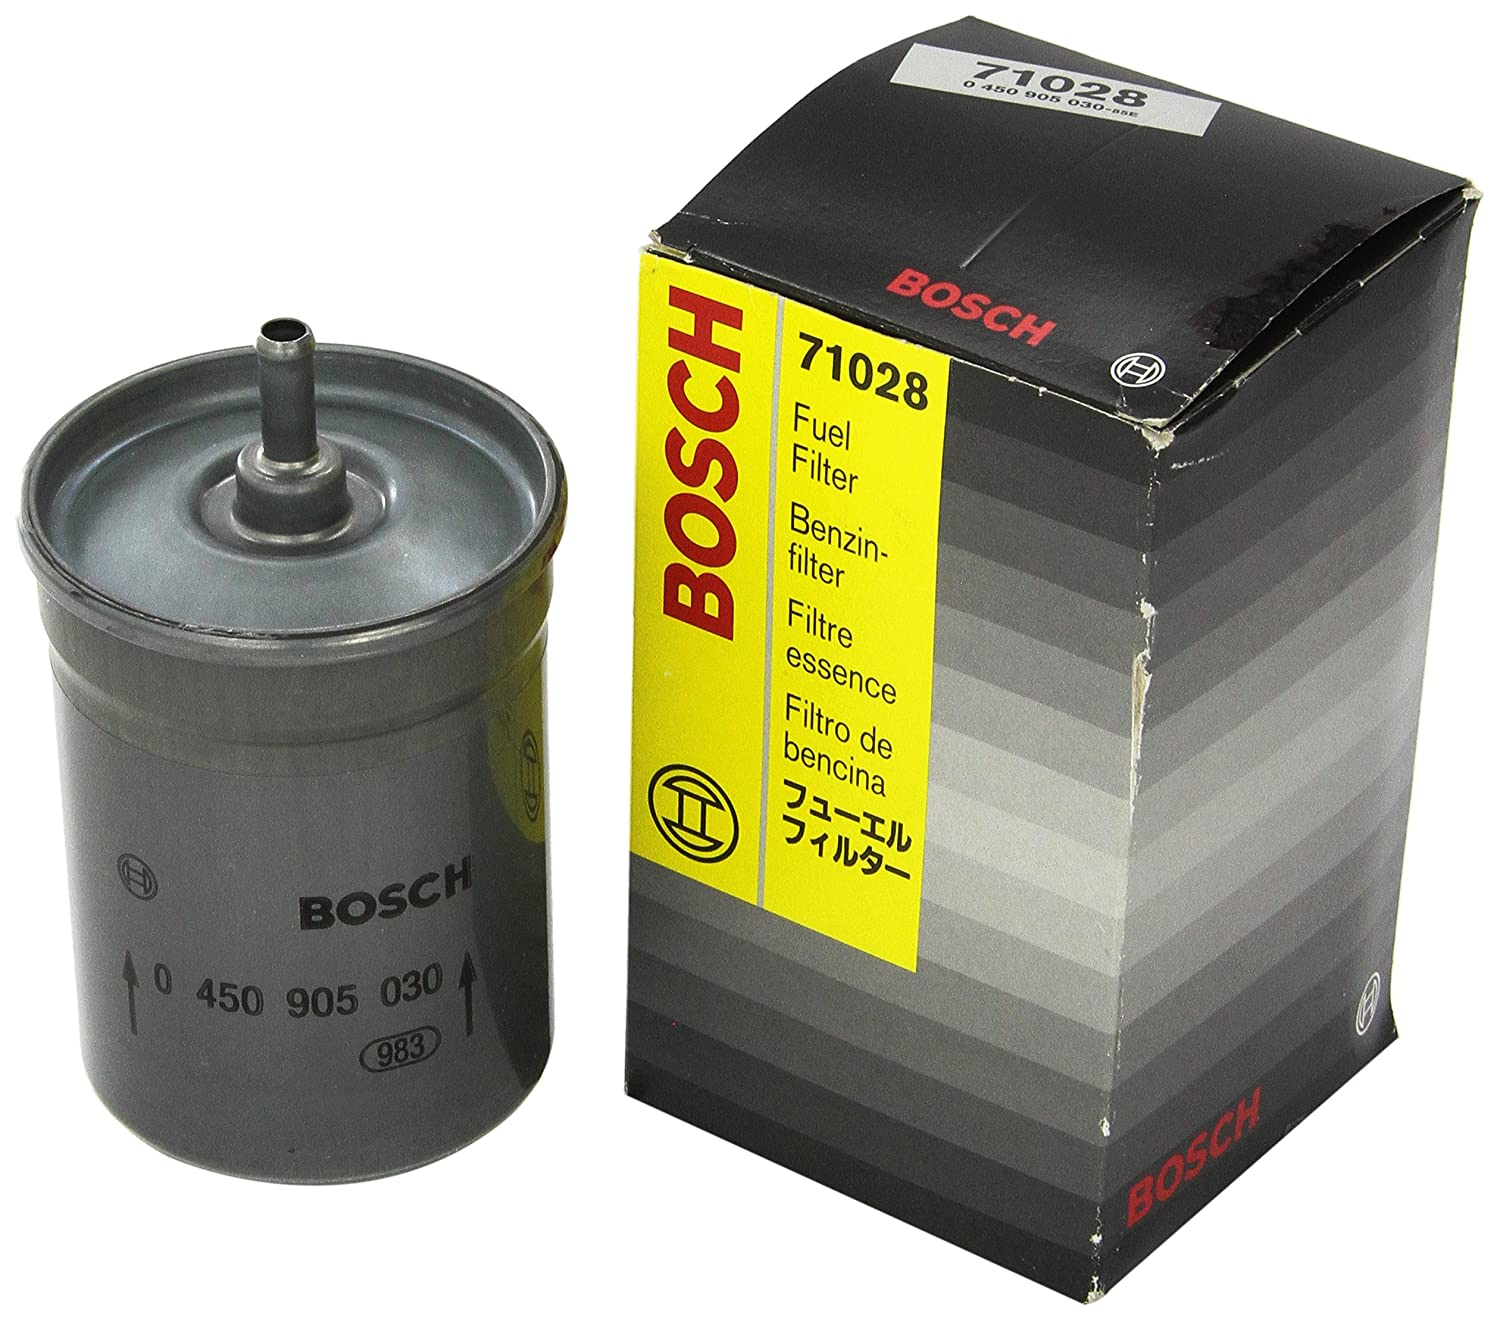 Bosch 71028 Fuel Filter Automotive Cabrio